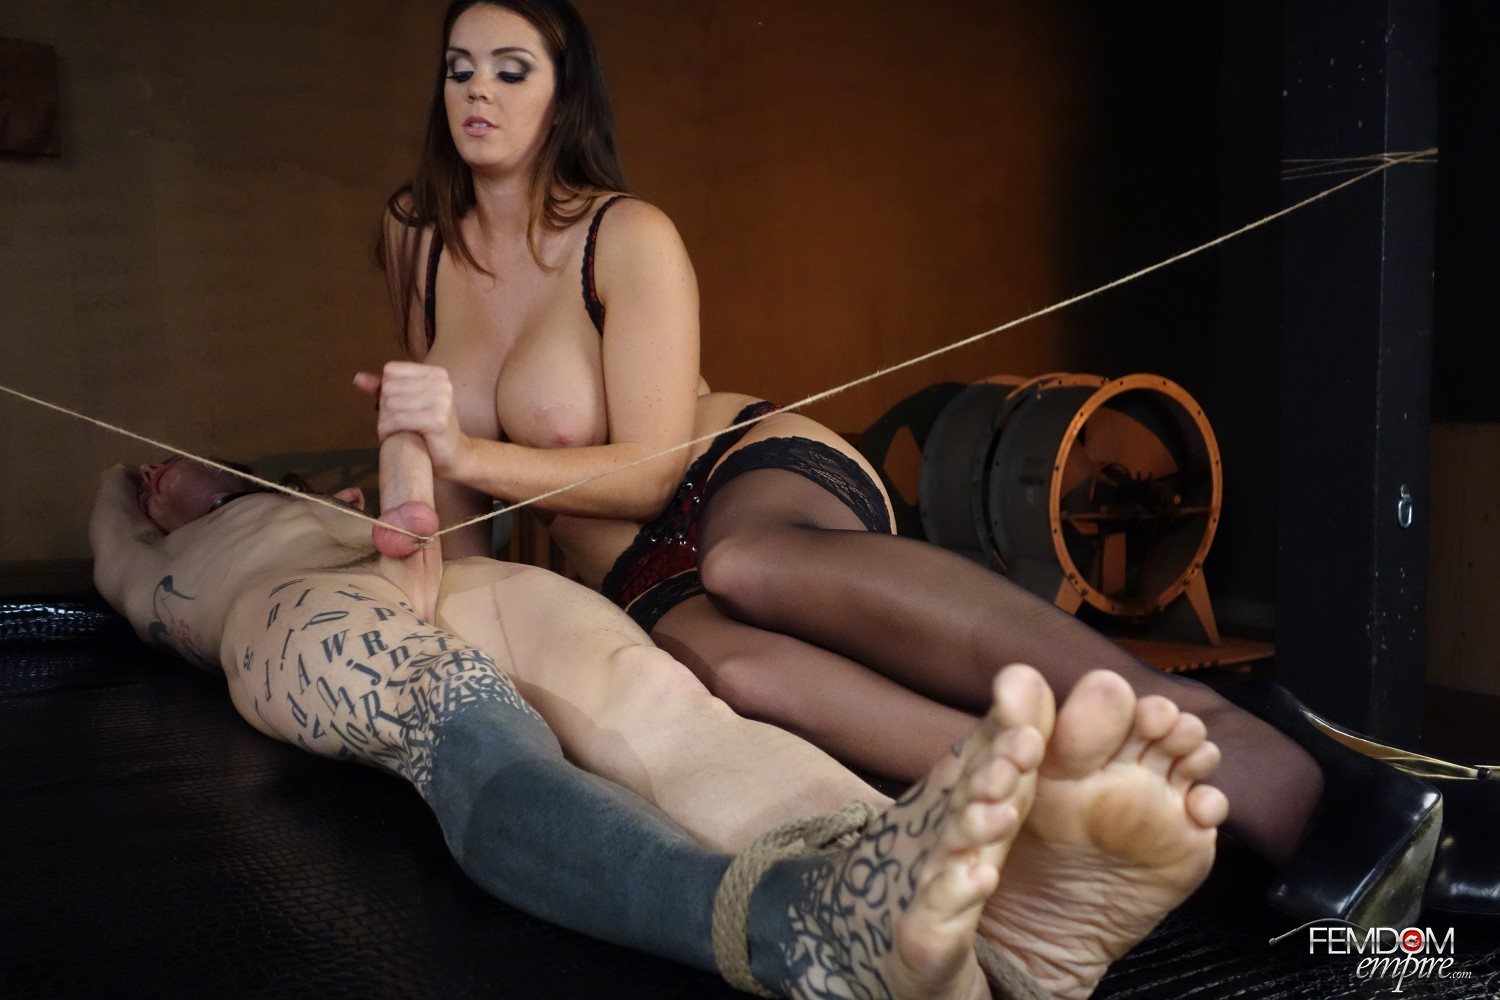 English handjob fed up with waiting for a